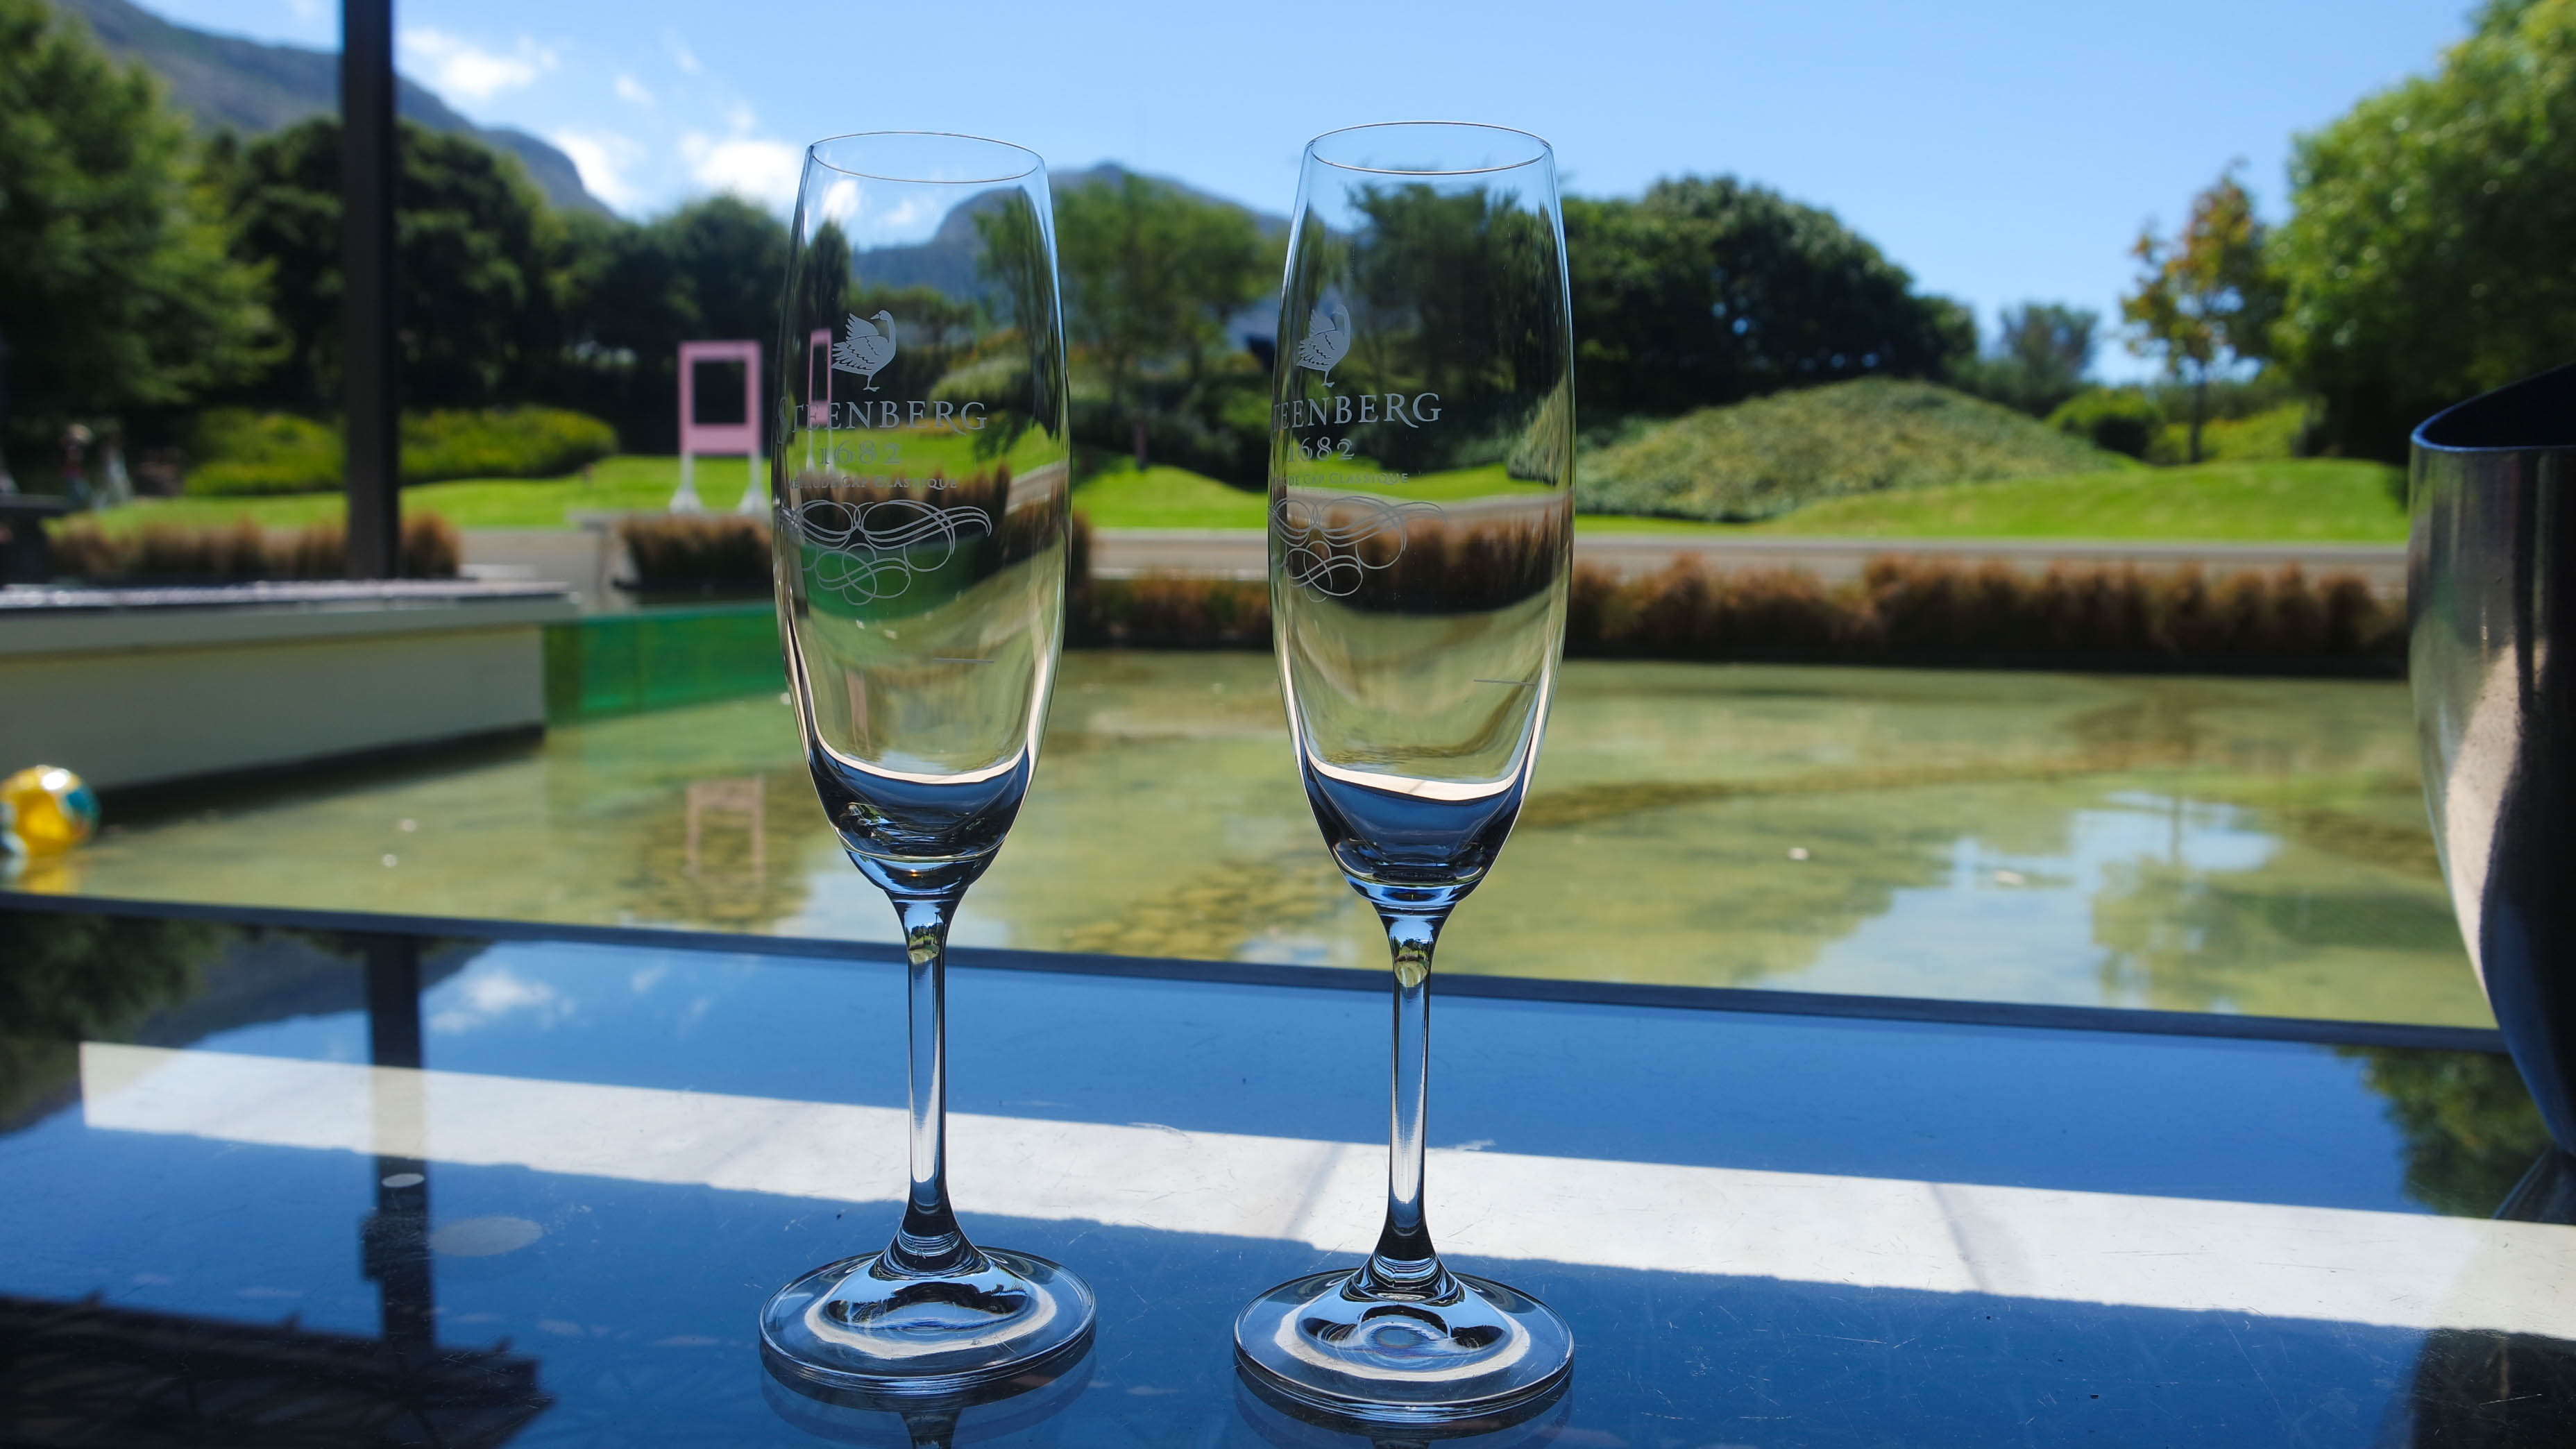 Steenberg wine farm